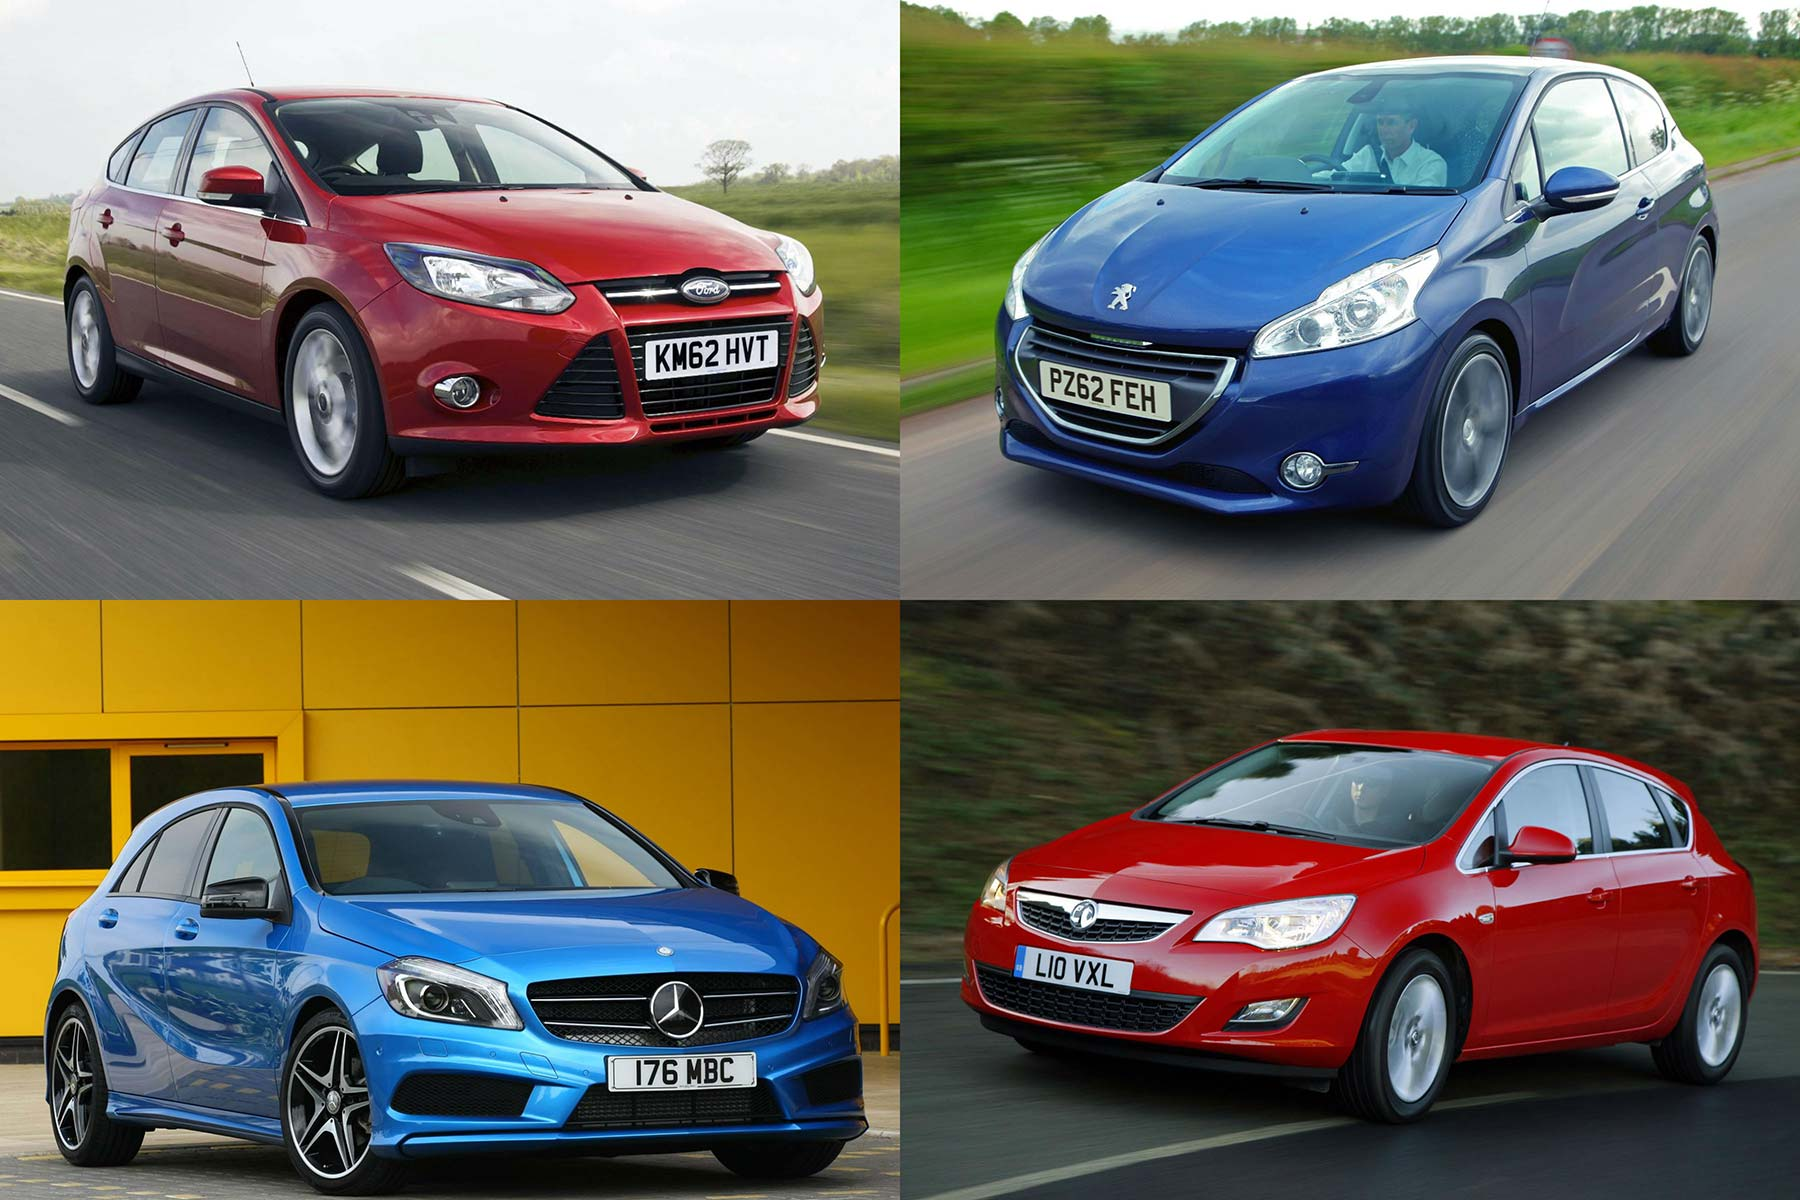 Fastest selling cars by region